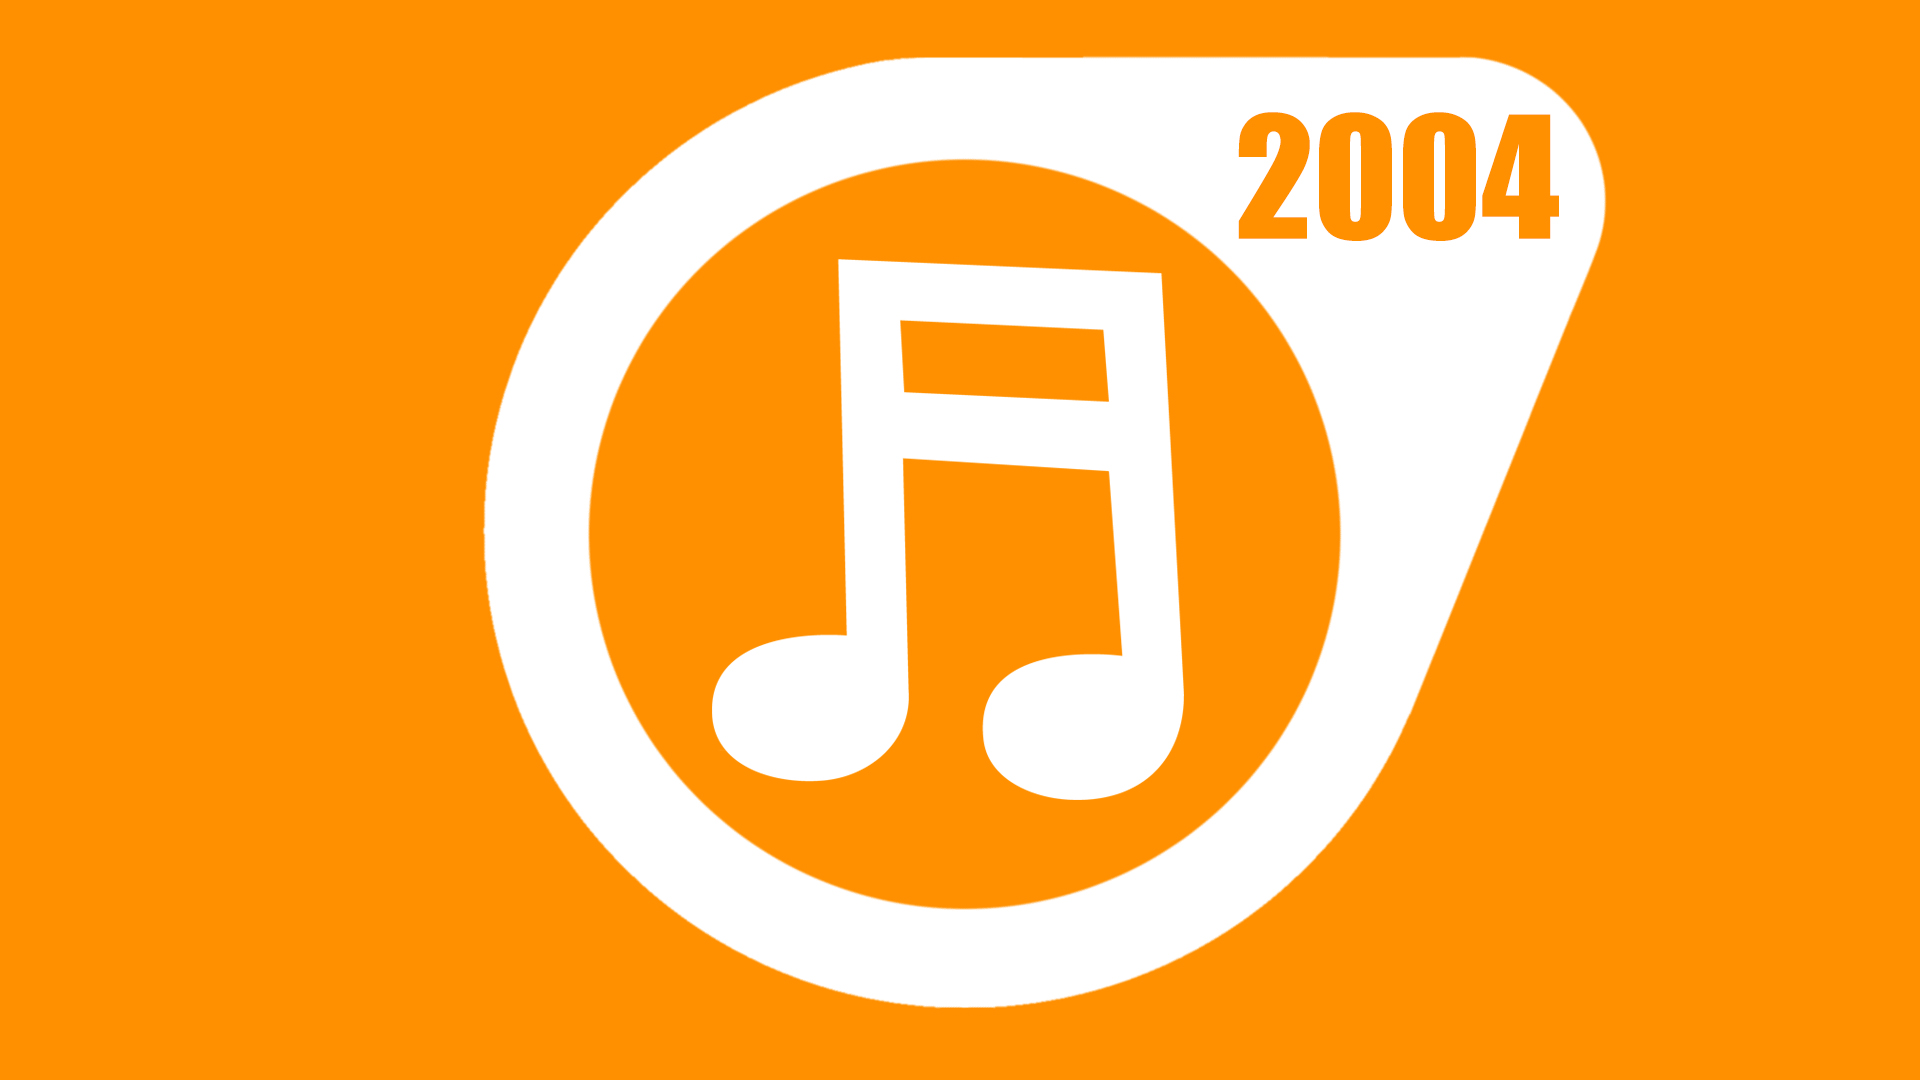 A year-in-review musical medley created by Ryan Hamann for the Sound of Play podcast featuring some of the outstanding music from the games of 2004. Please check out Sound of Play for weekly collections of excellent video game music. See how many of the tracks you can identify on your own.